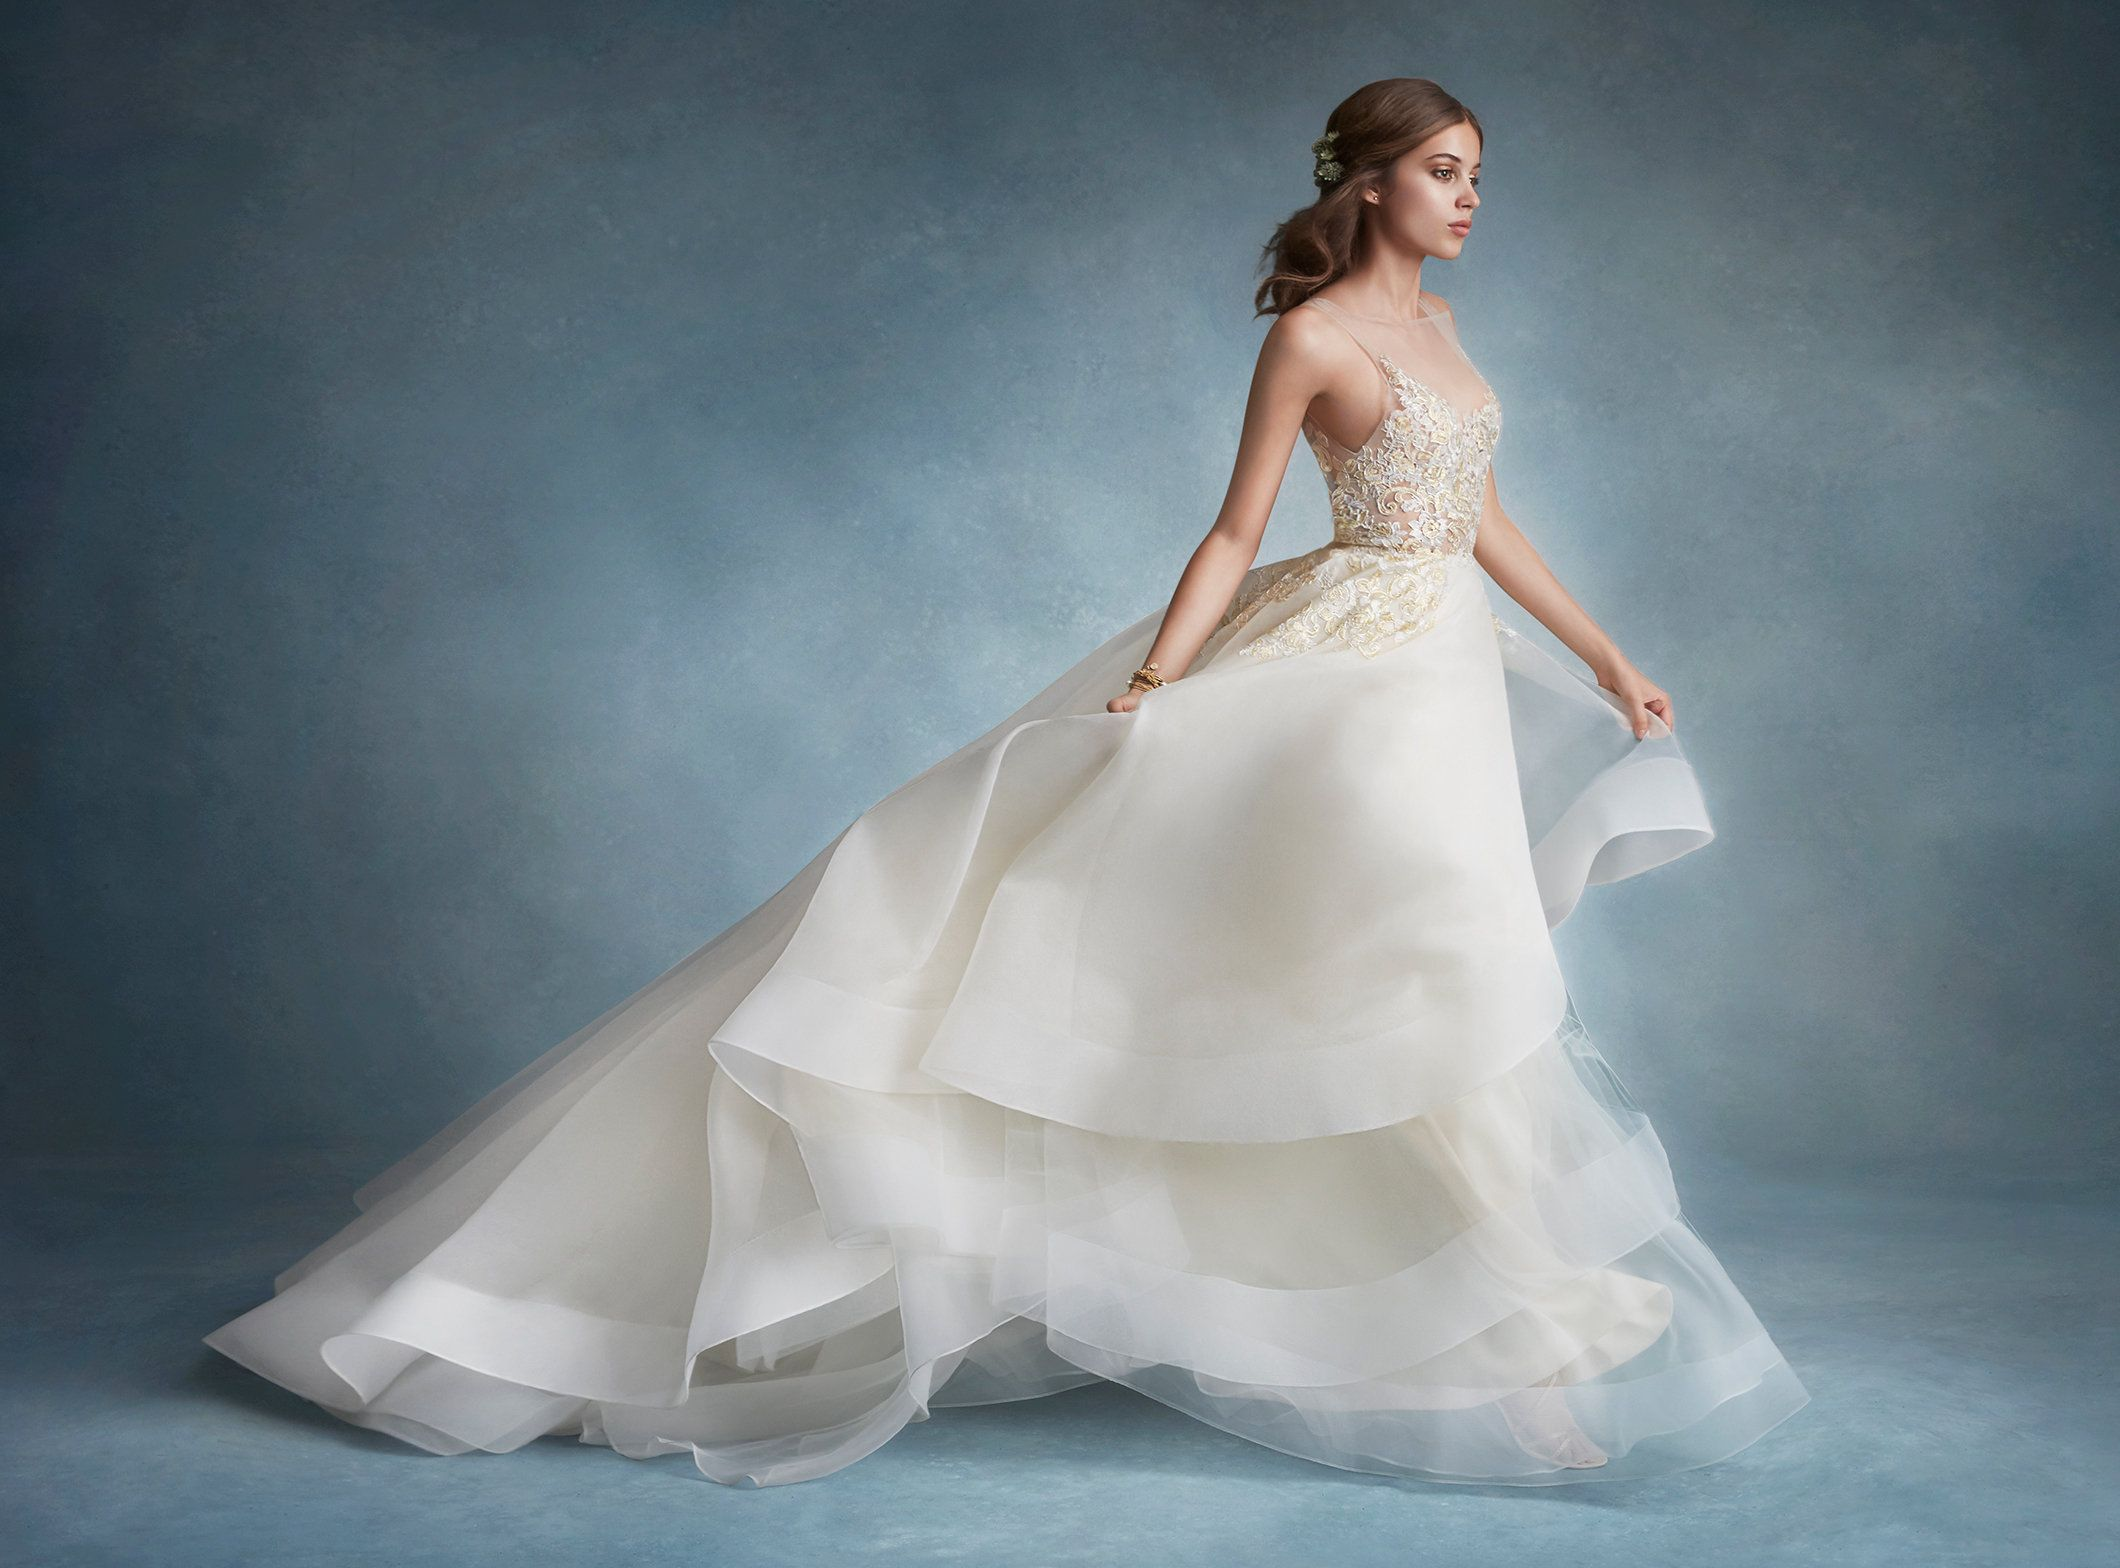 Bridal Gowns and Wedding Dresses by JLM Couture - Style 2609 | Moon ...